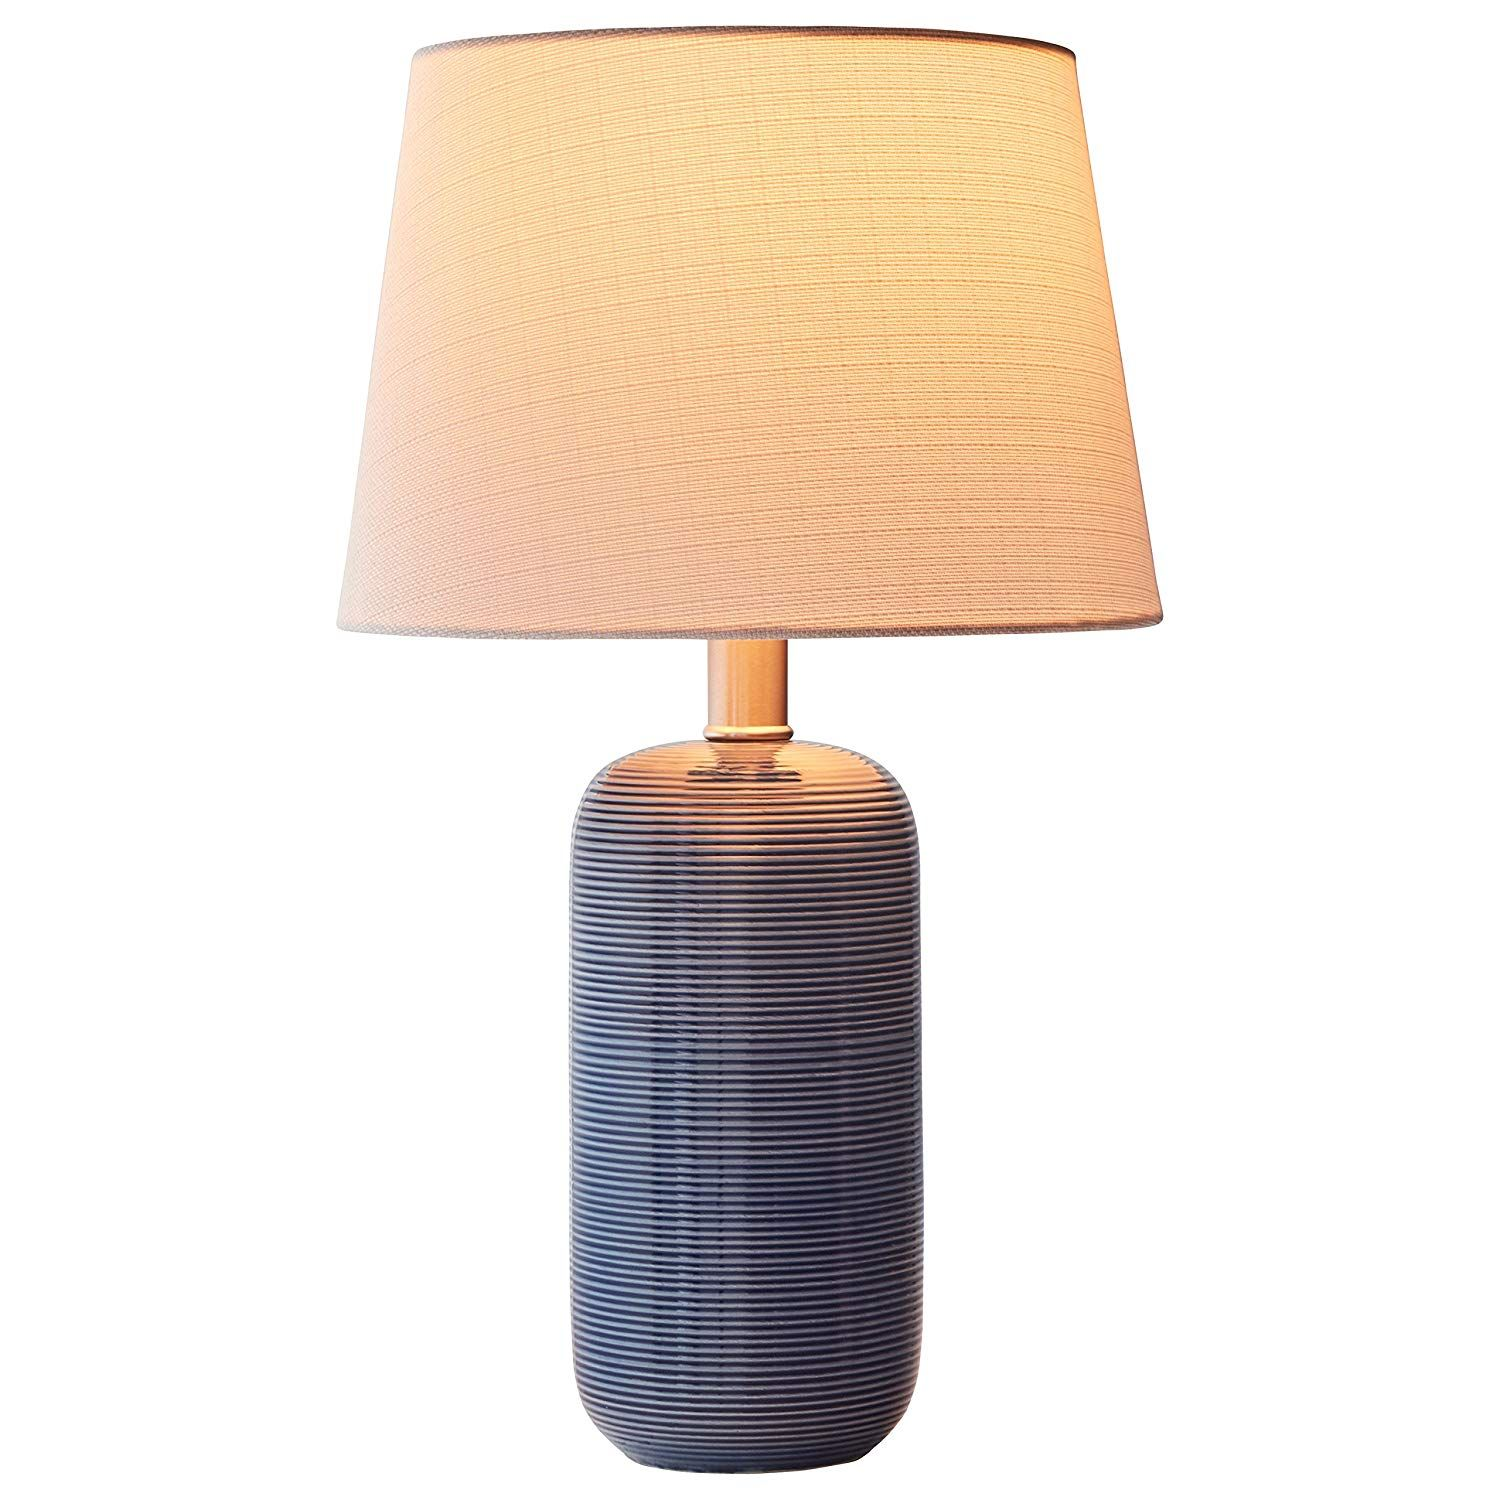 Stone & Beam Leland Modern Textured Table Lamp With Bulb